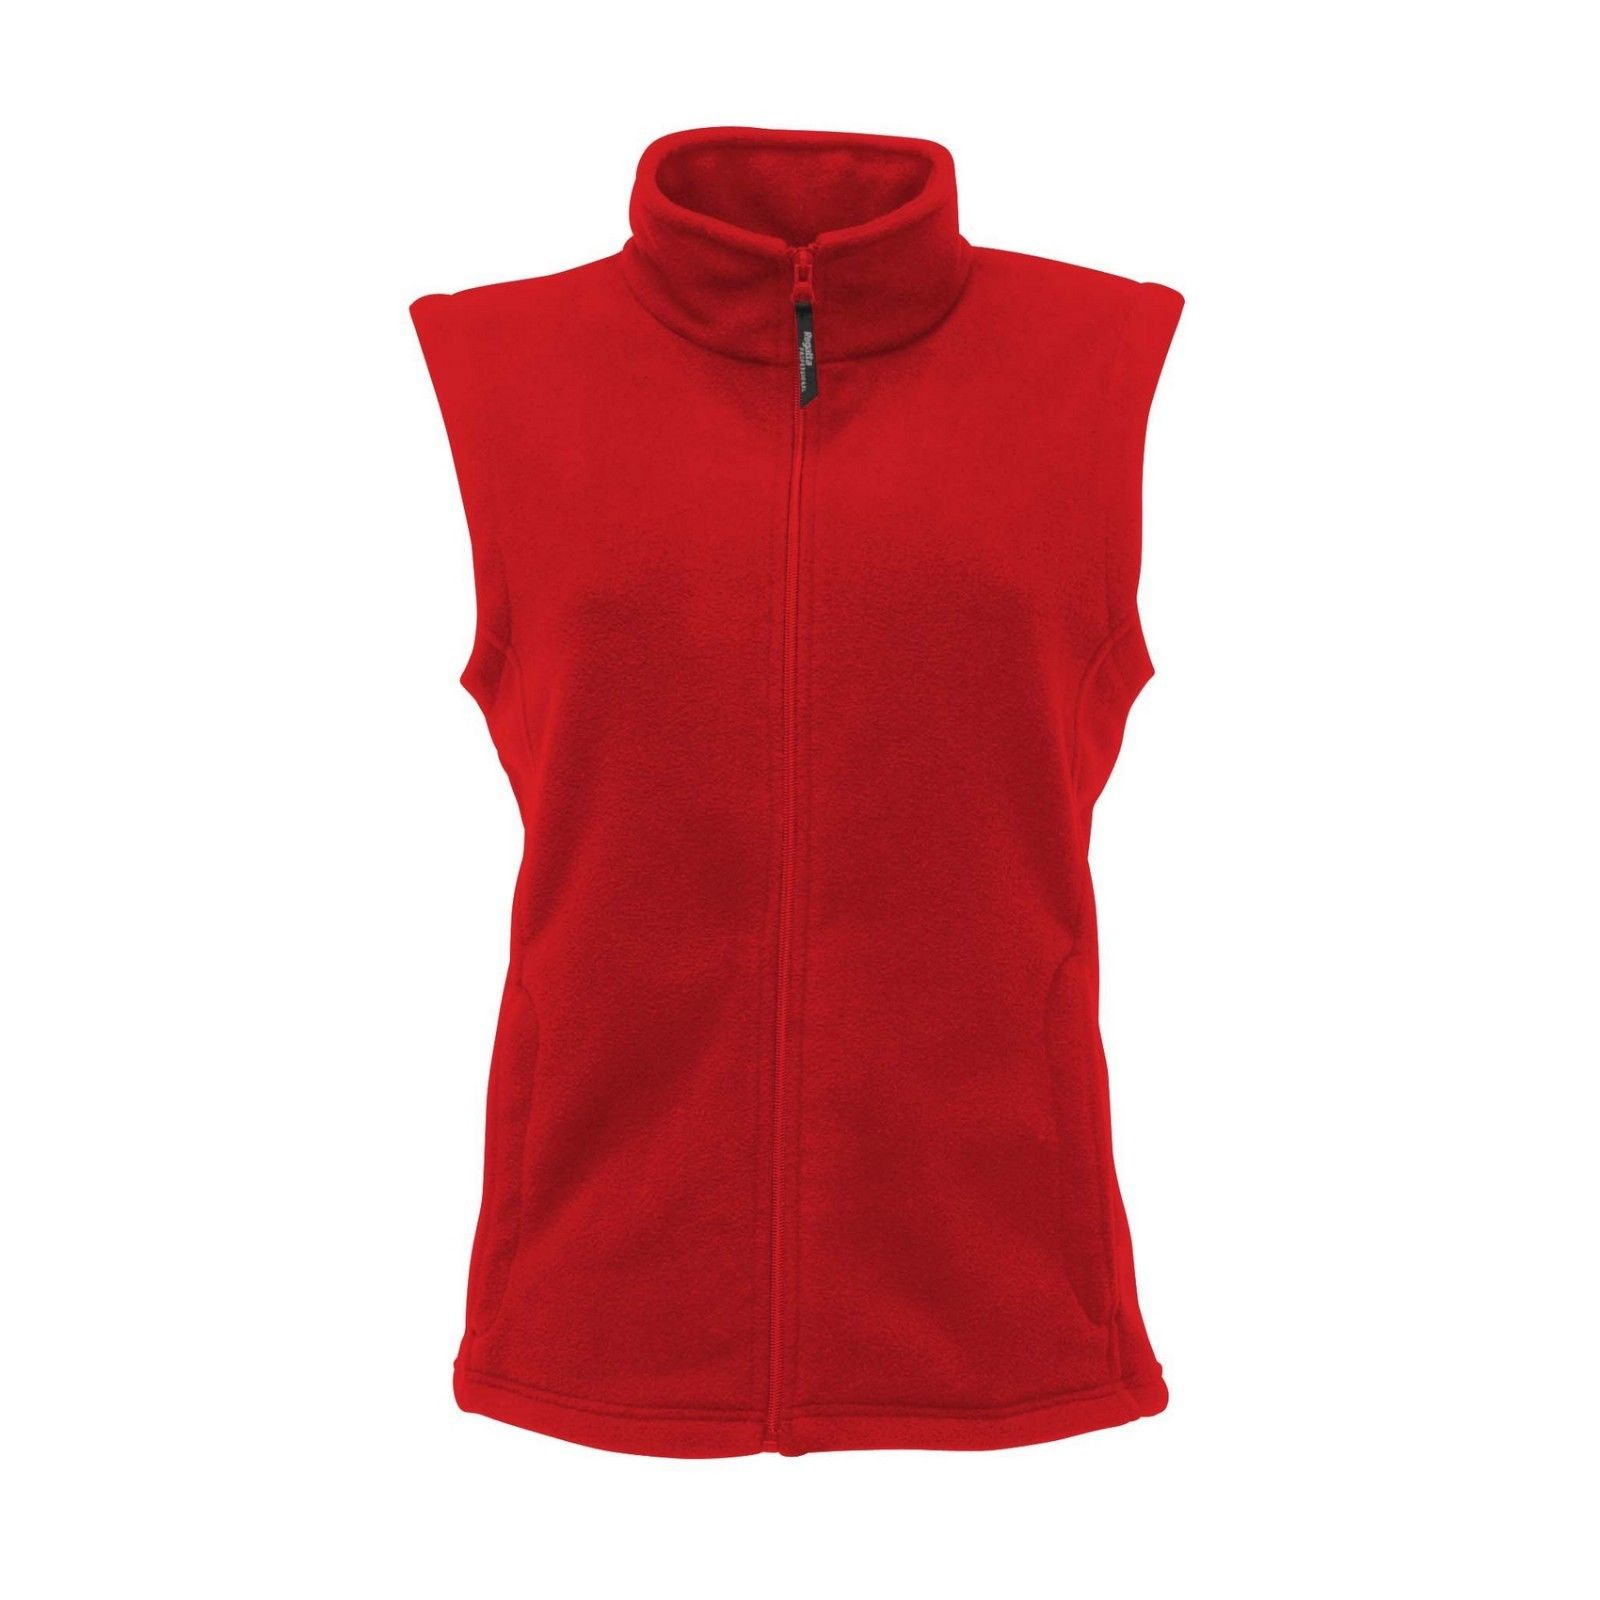 Gilet in Many Colour Choices REGATTA LADIES Micro Fleece BODYWARMER